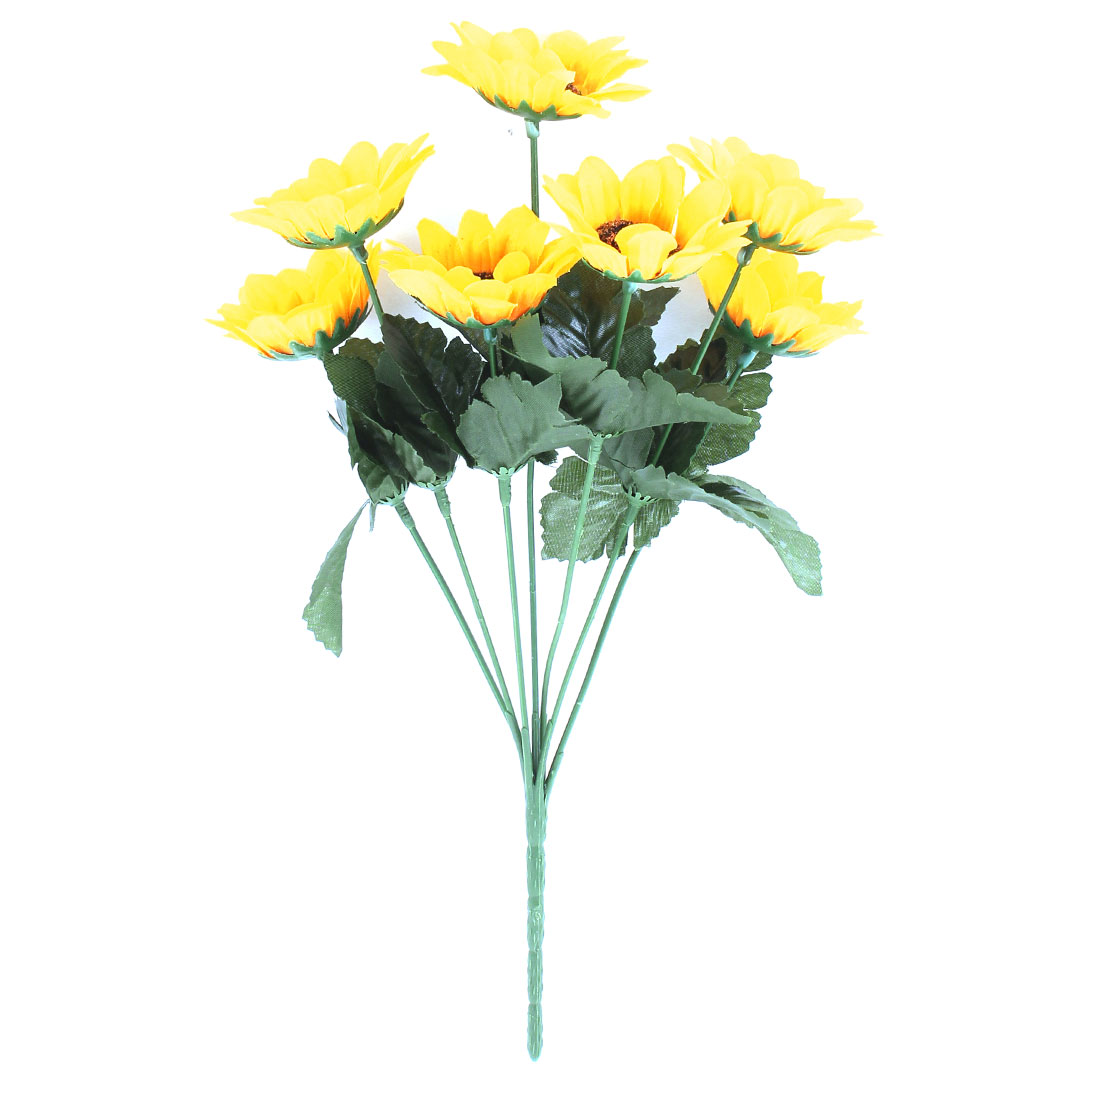 7 Heads Artificial Chrysanthemum Daisy Fake Flower Bouquet Home Decor Yellow